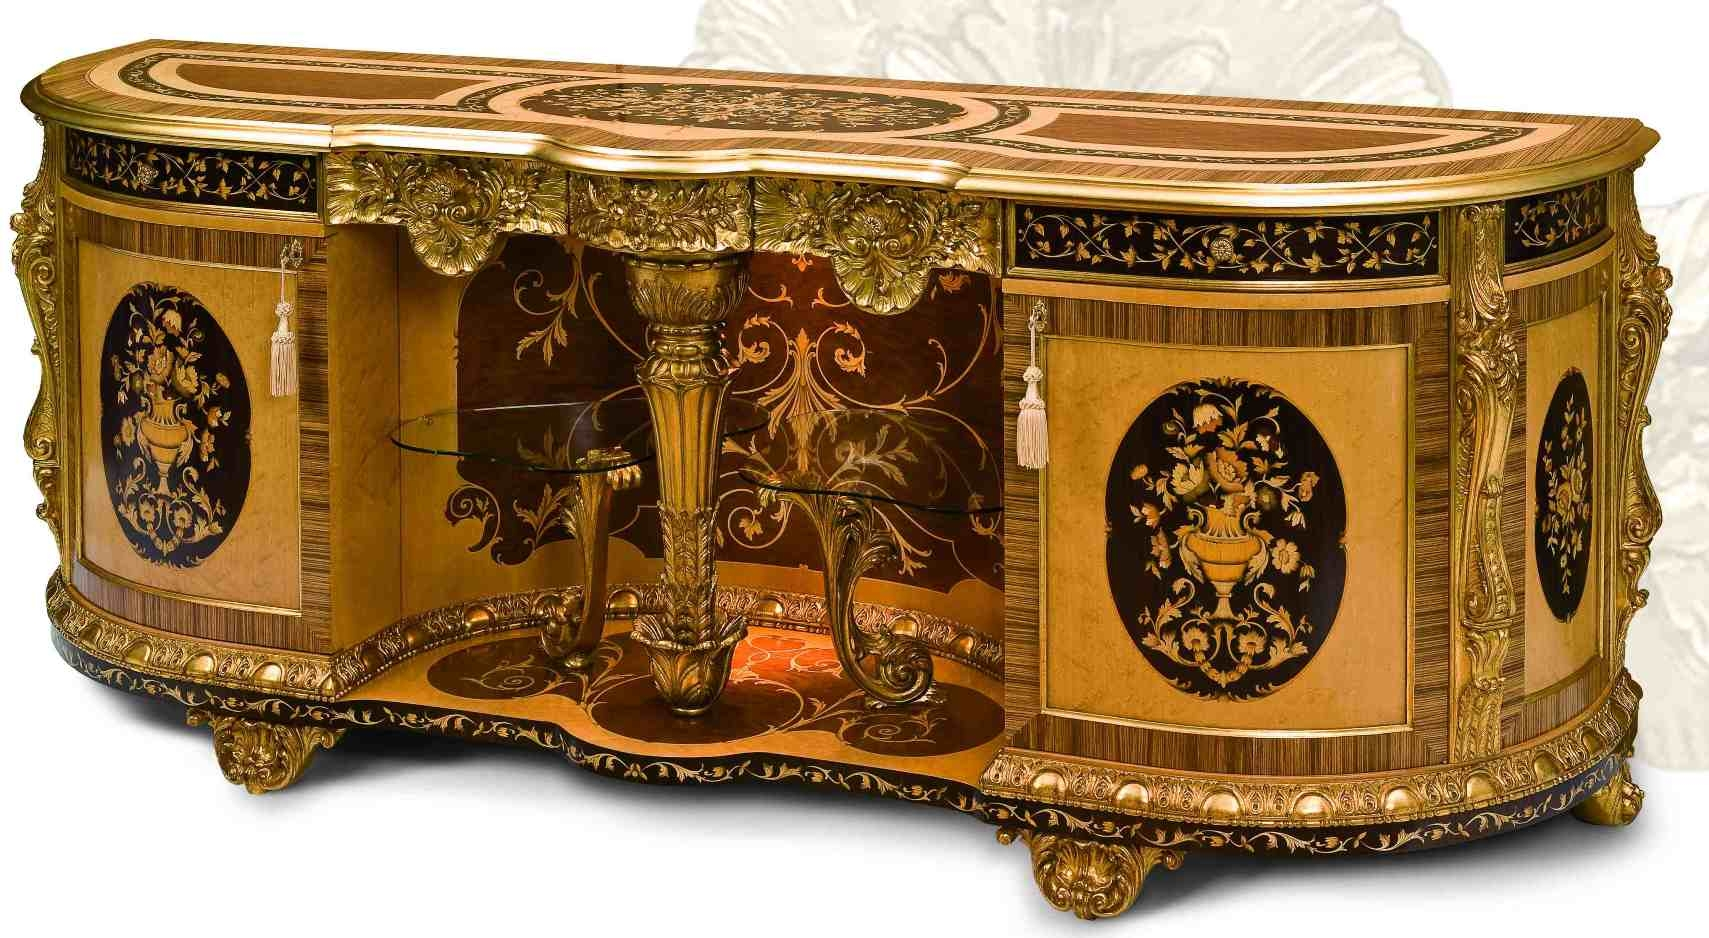 Breakfronts U0026 China Cabinets 11 Luxury Furniture. Exquisite Empire Style  Dining Breakfront.